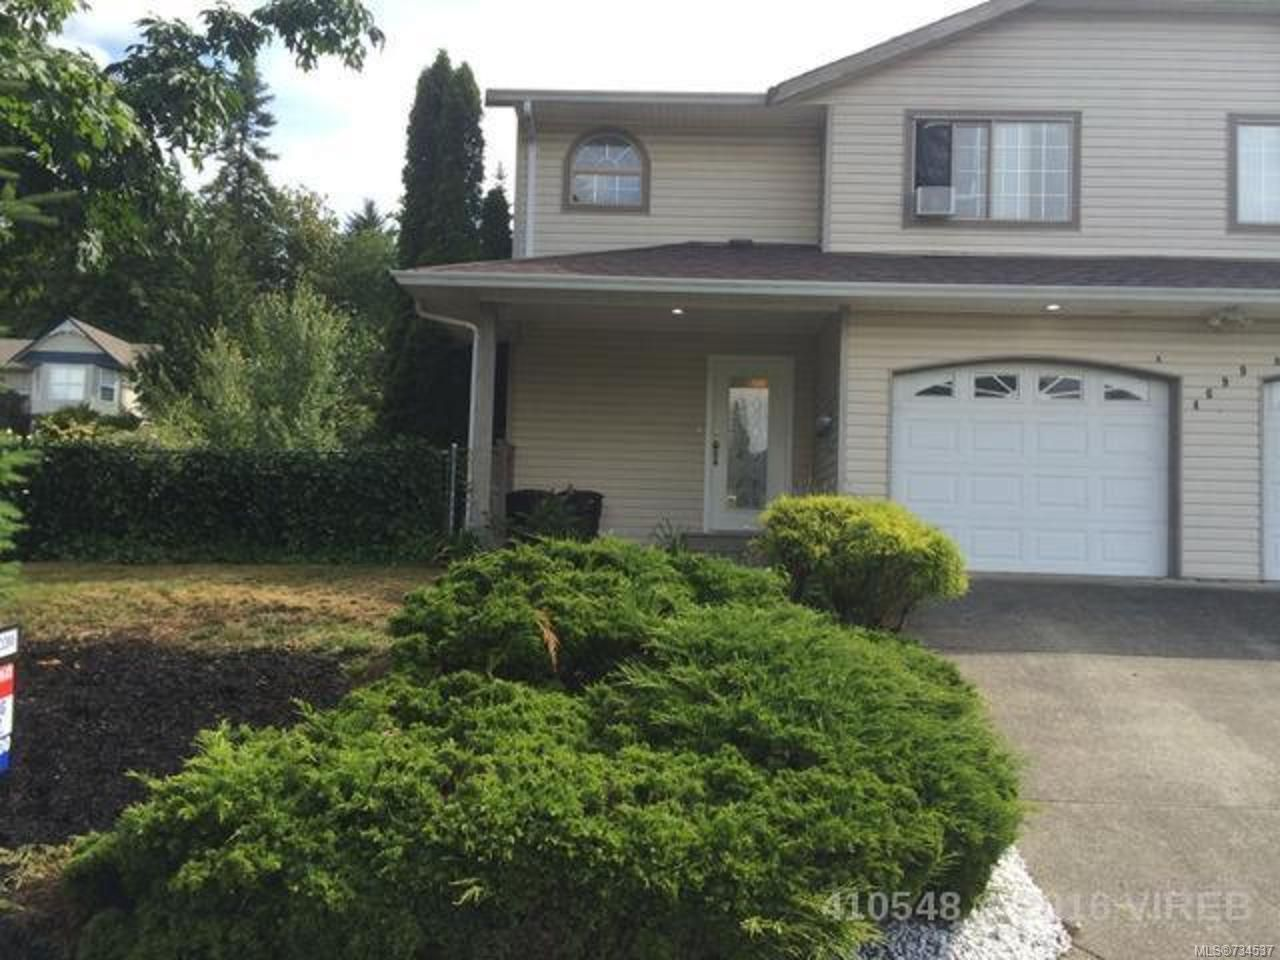 Main Photo: A 4699 SHETLAND PLACE in COURTENAY: CV Courtenay East Half Duplex for sale (Comox Valley)  : MLS®# 734537